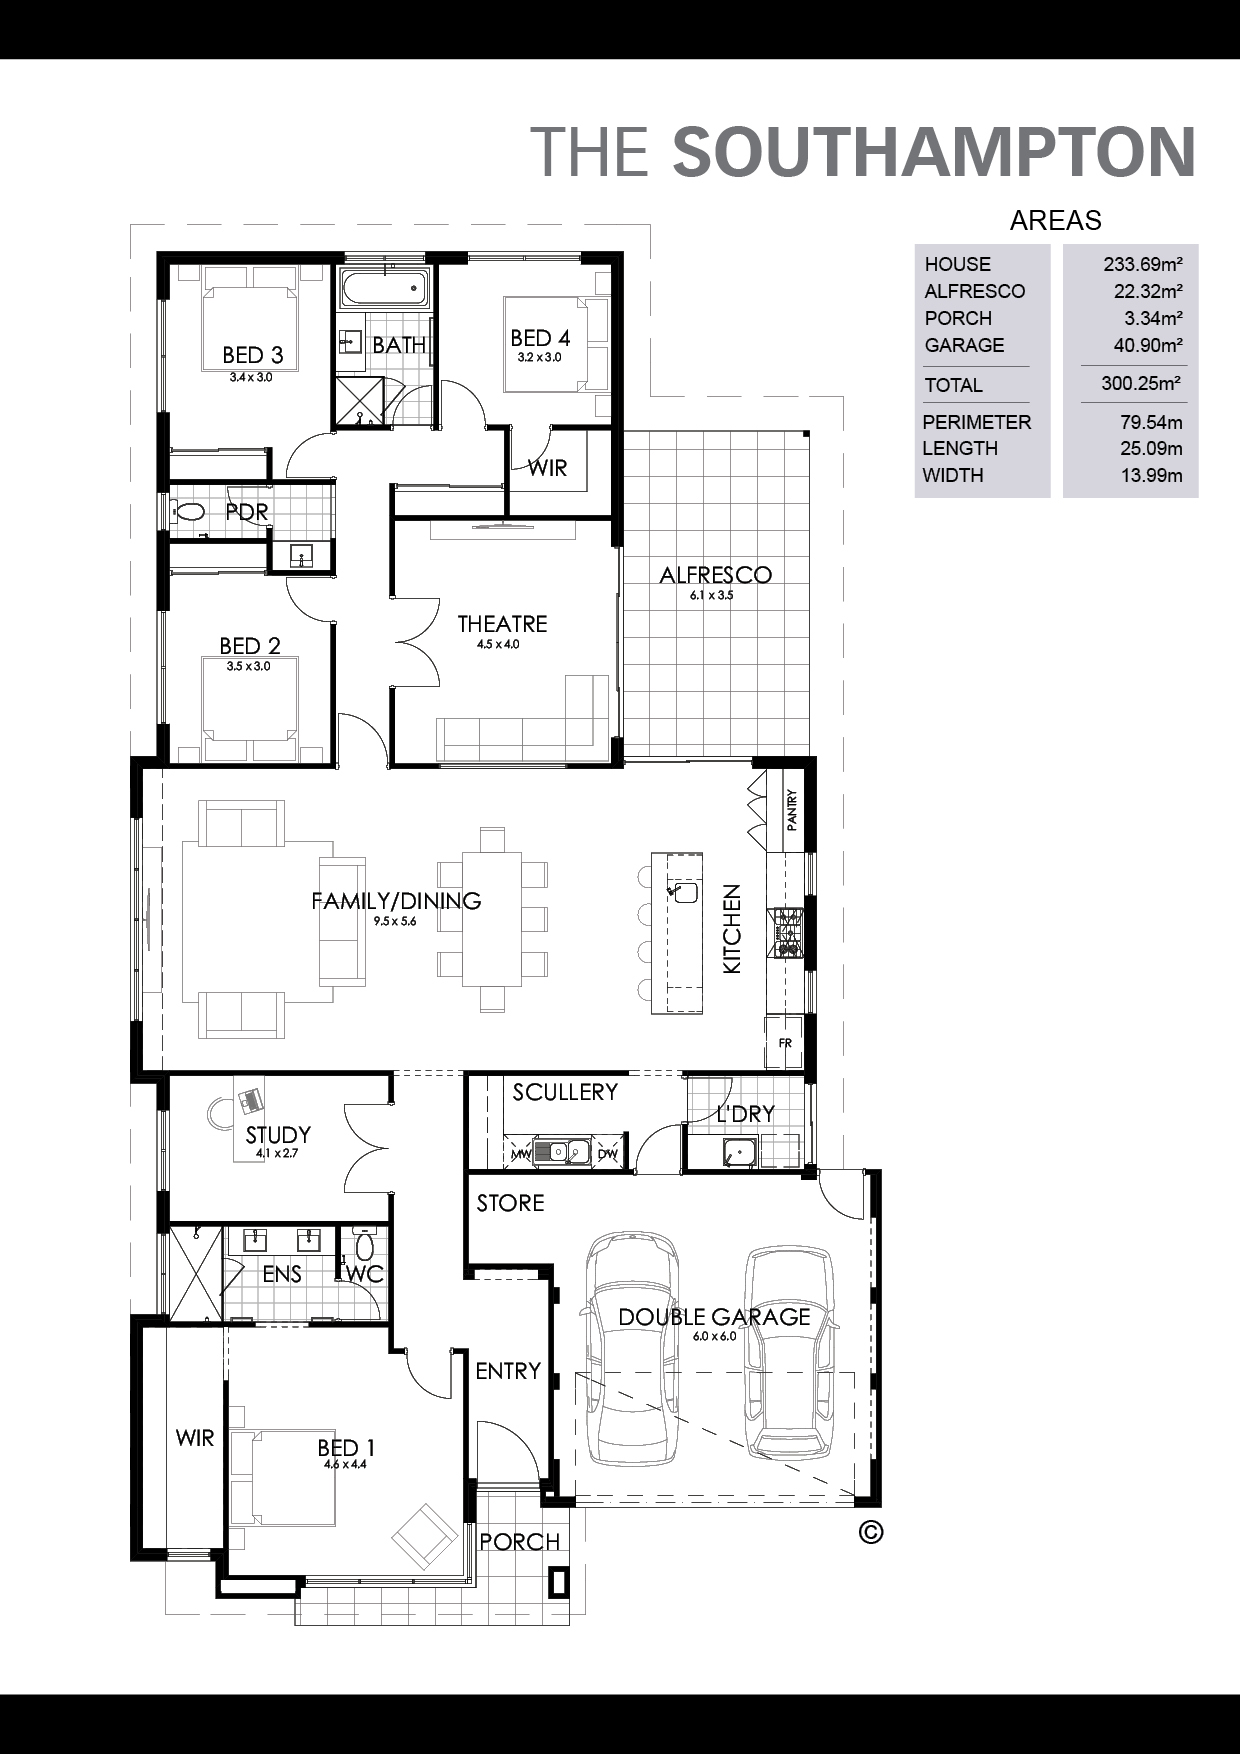 The Southampton Floorplan